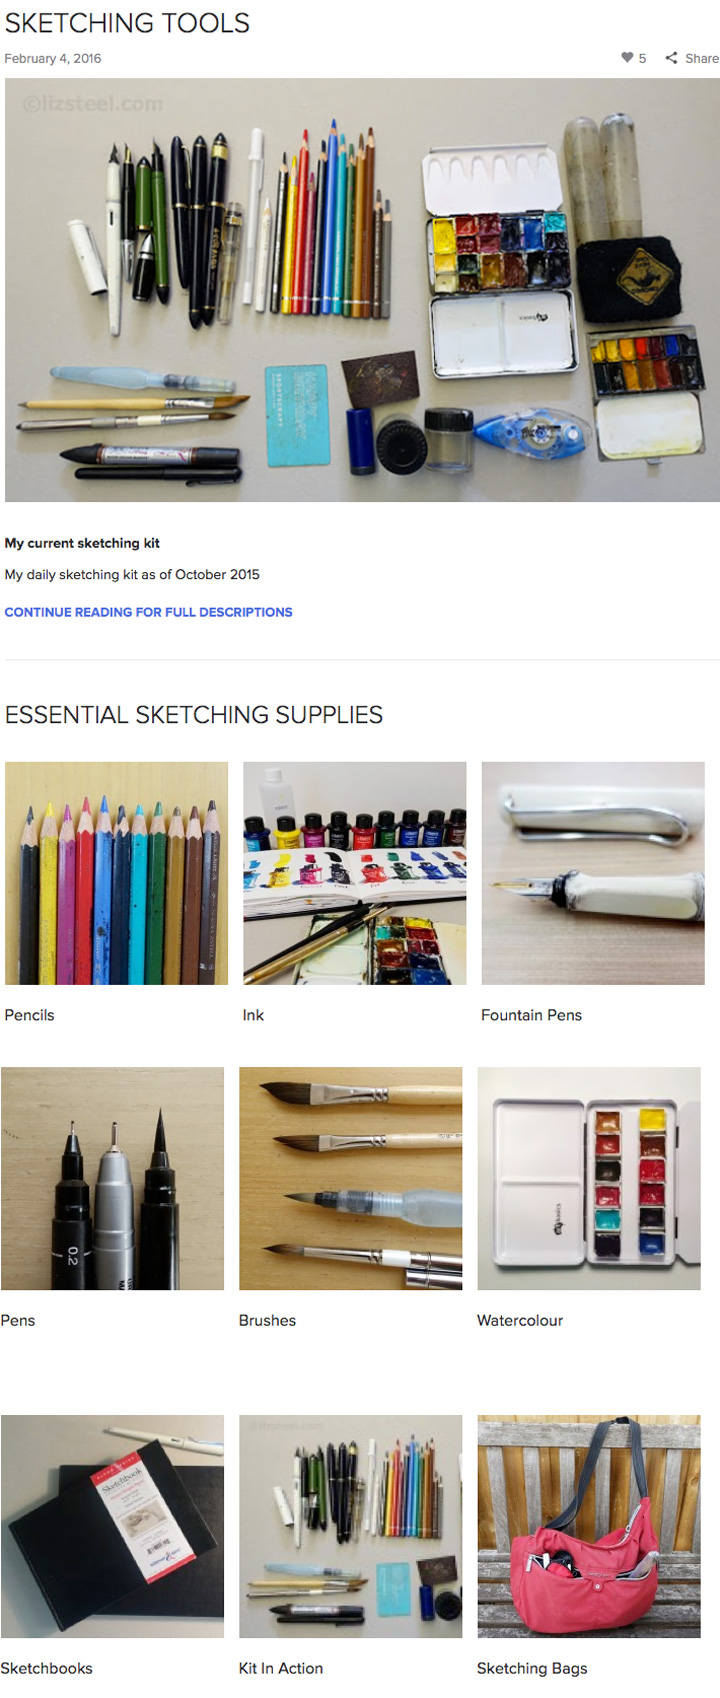 Sketching-Tools-page